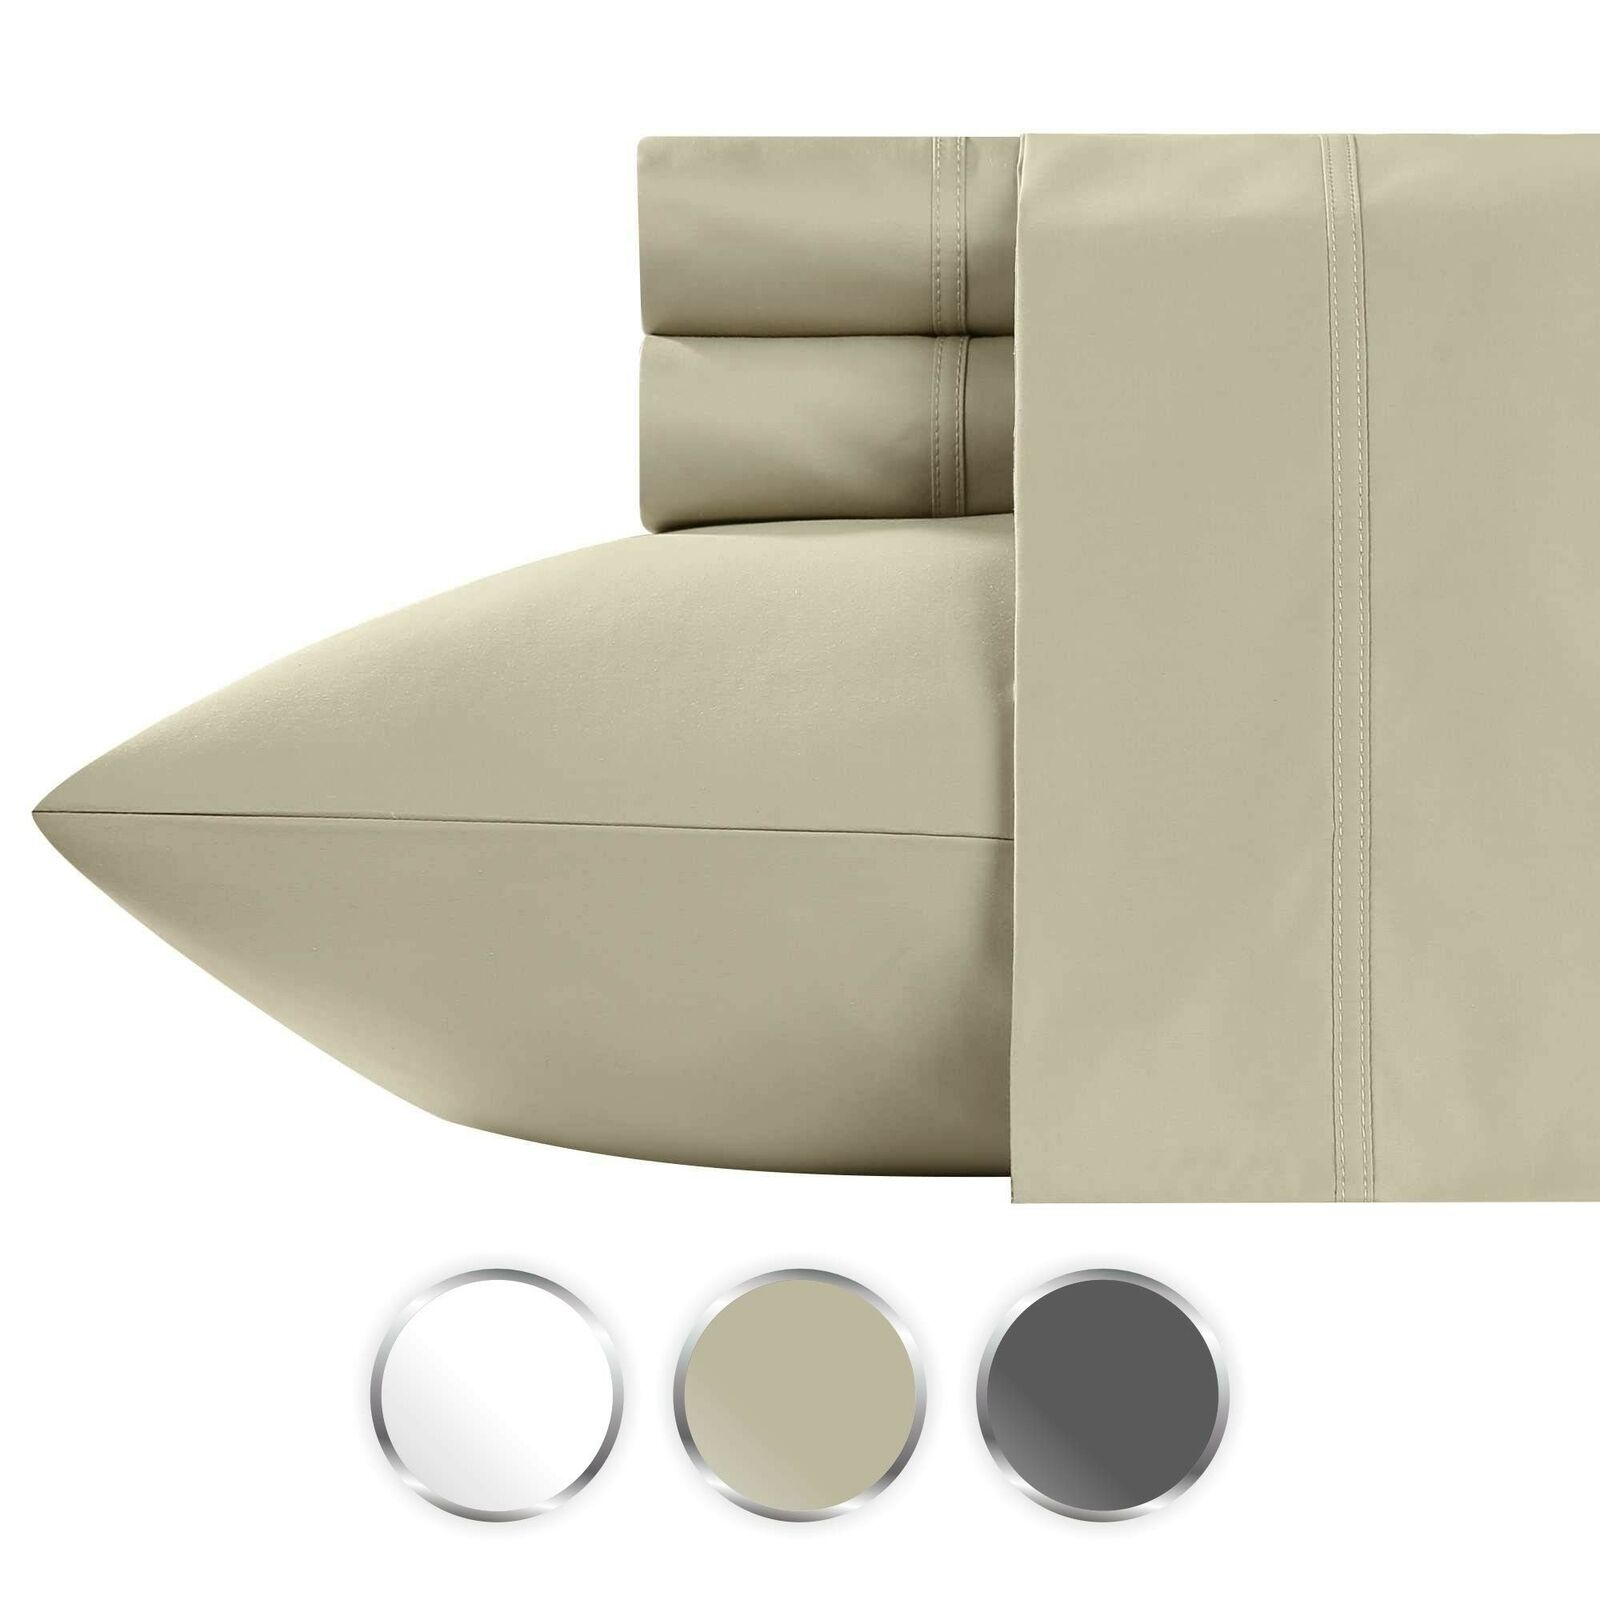 0468b5278662 1000 100% Pure Cotton Bed Sheets on Amazon, 4-Piece Highest Qual ...